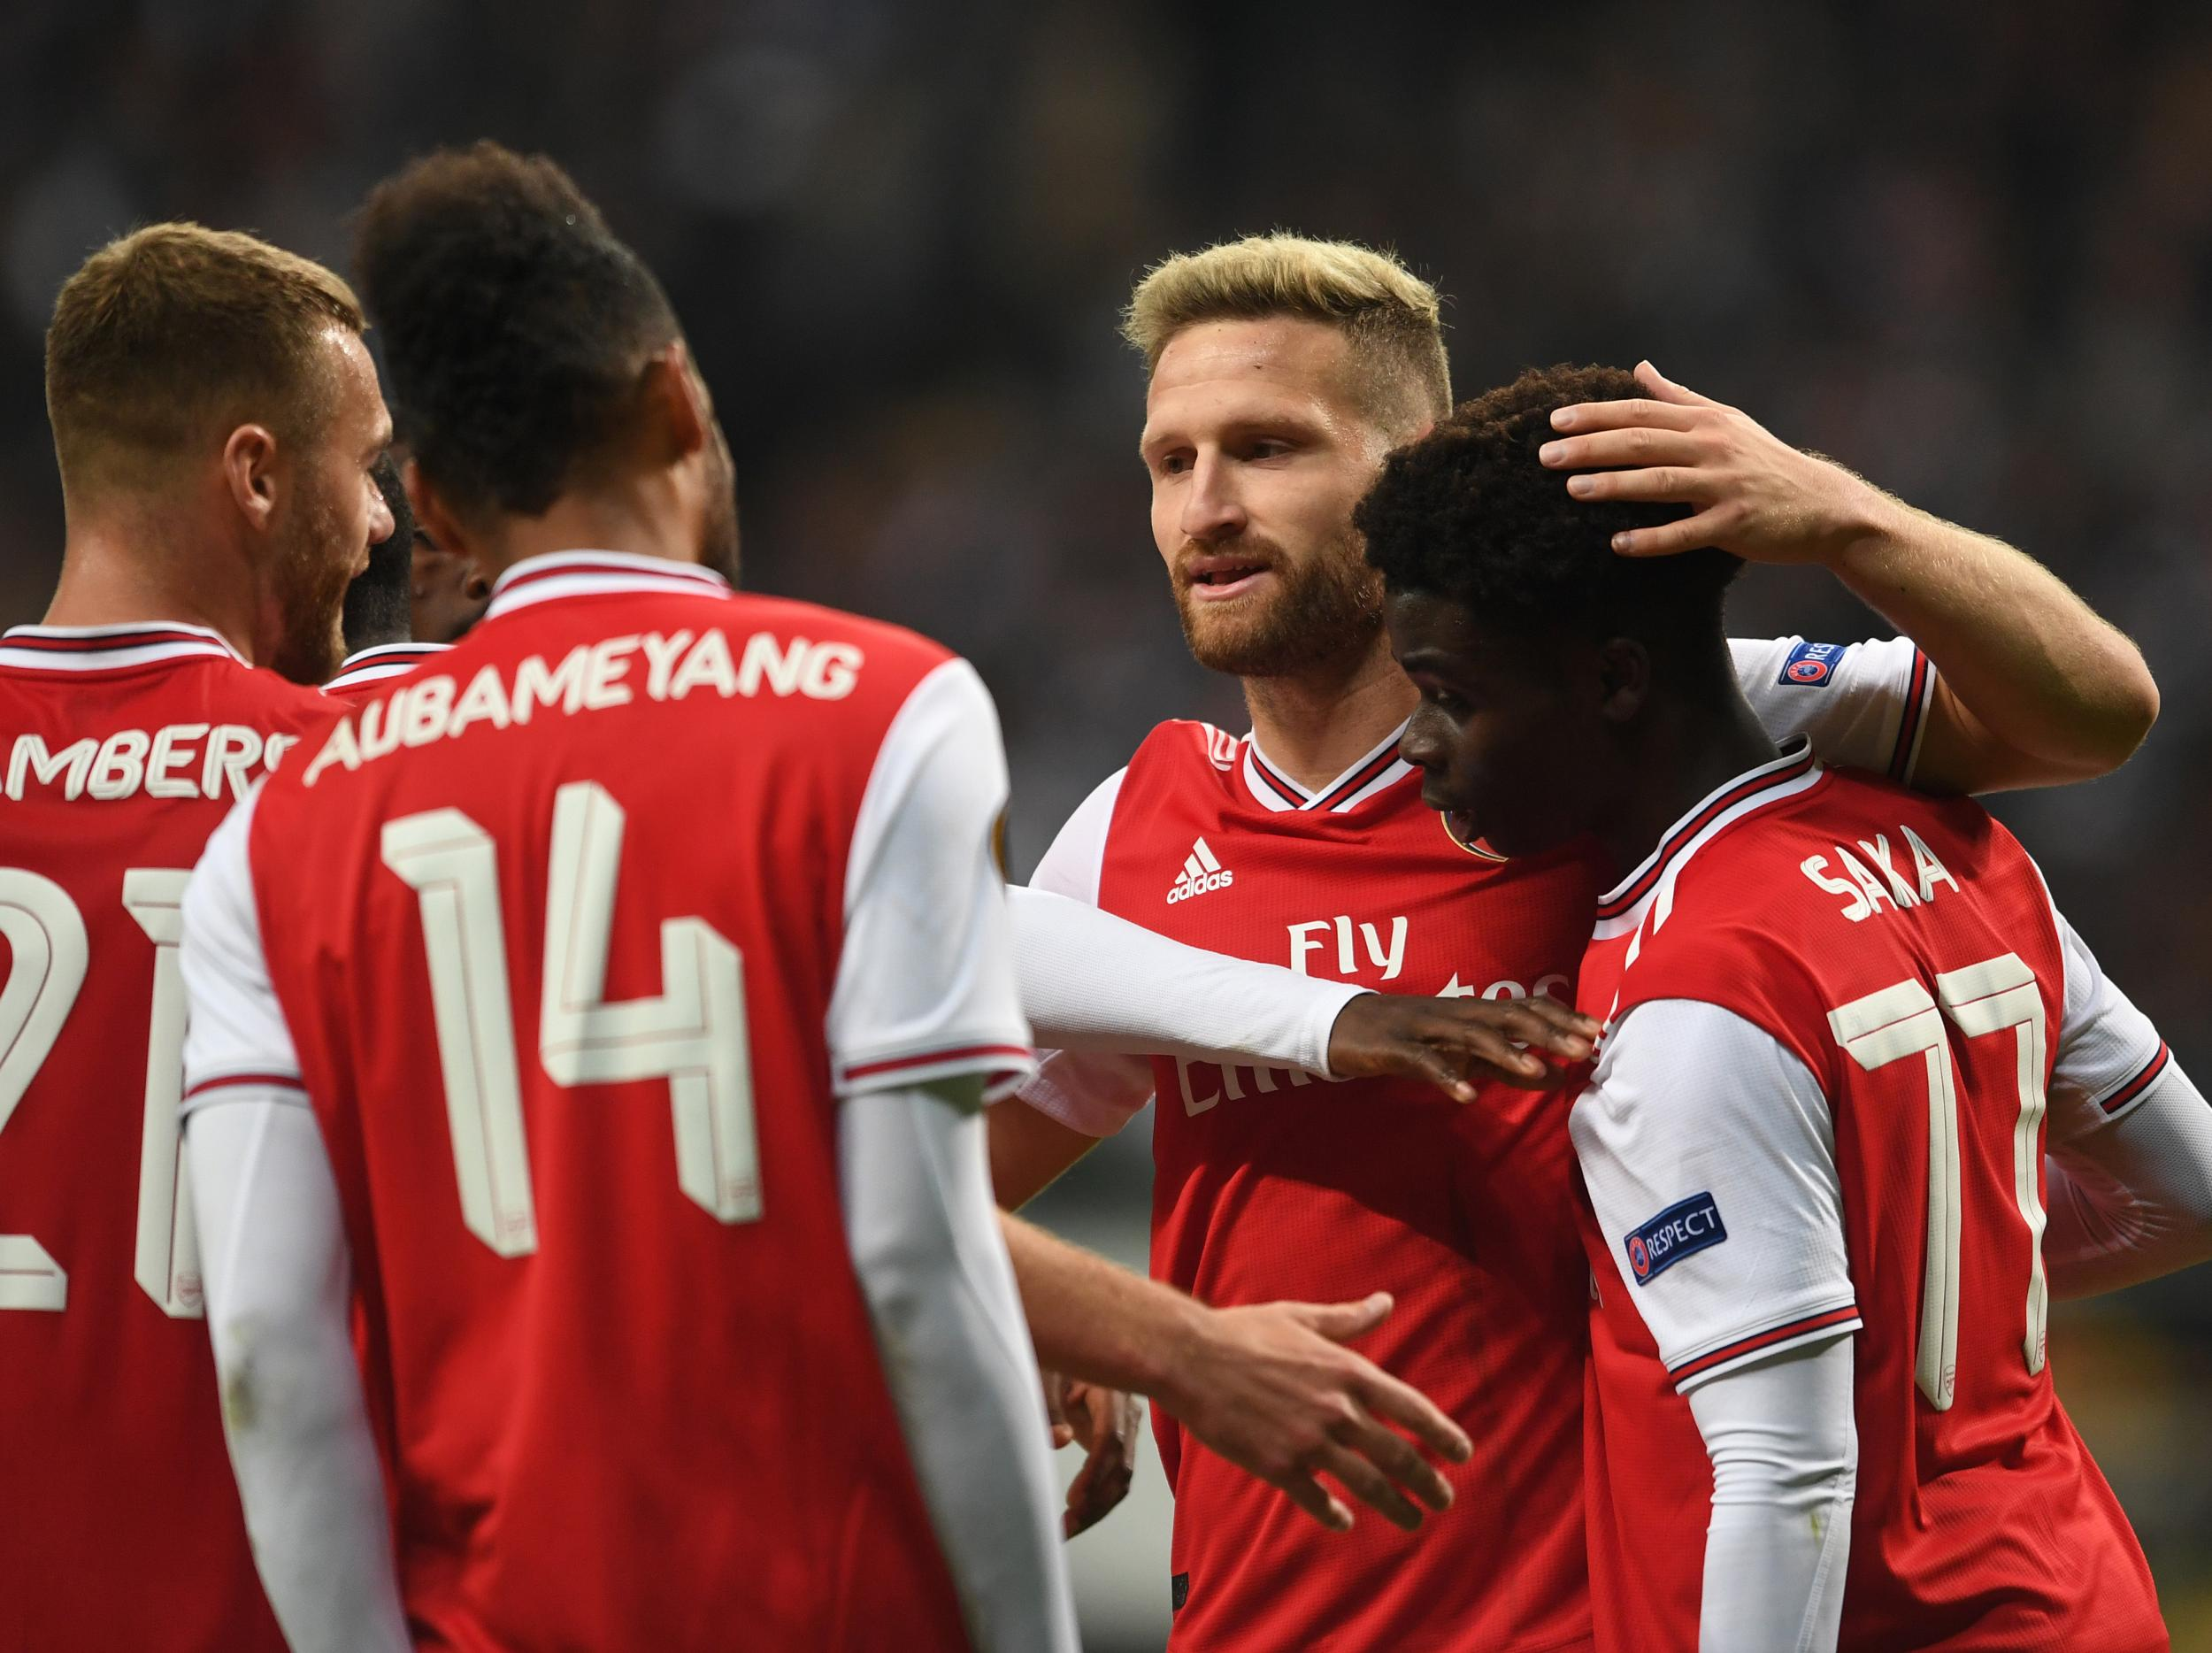 Shkodran Mustafi not planning on quick Arsenal exit: 'I have still got two years left on my contract'